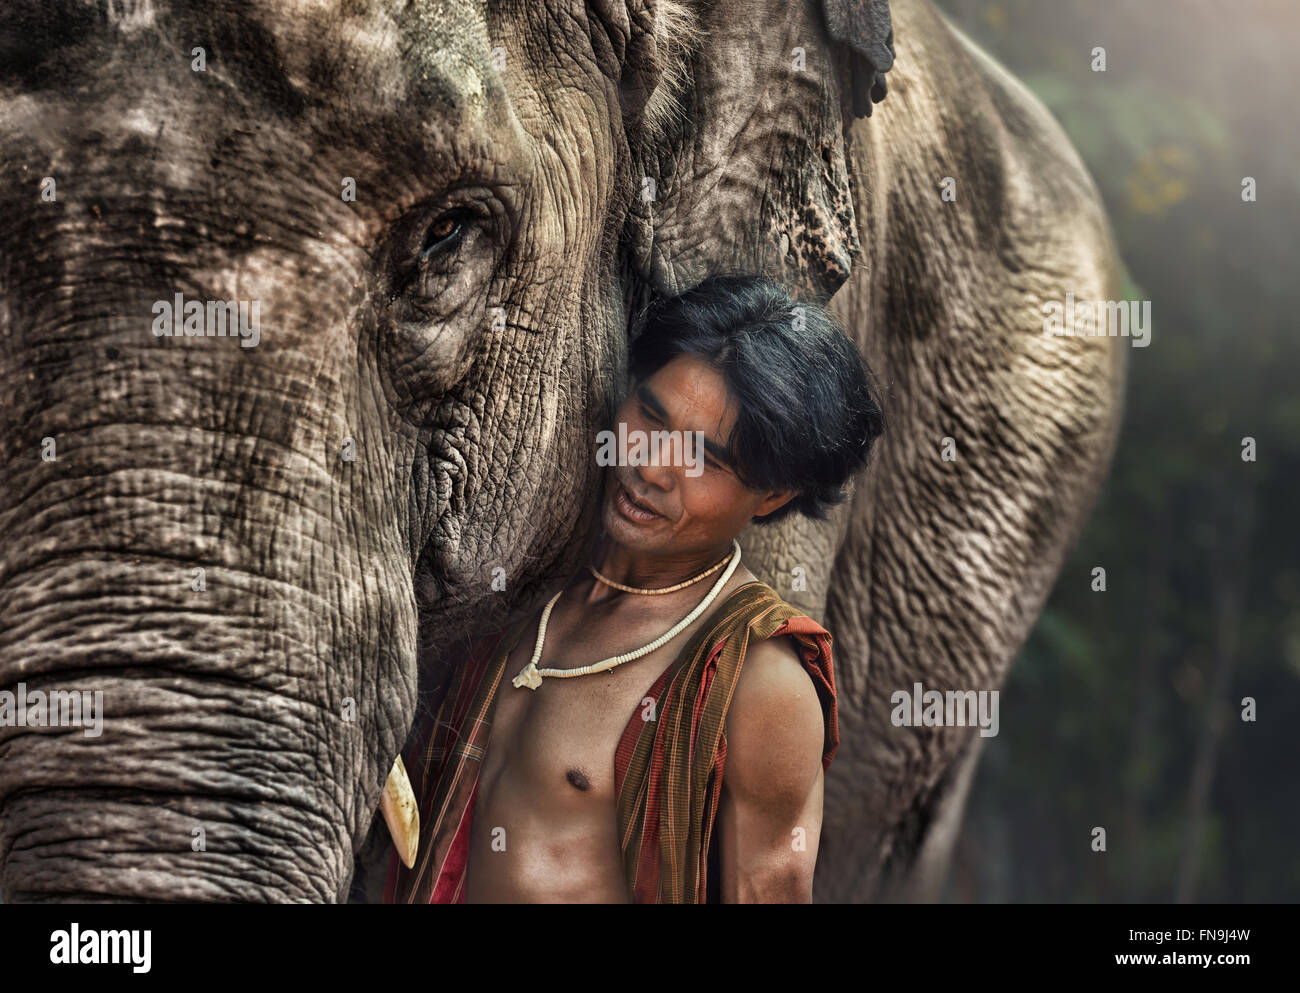 Mahout man With Elephant - Stock Image